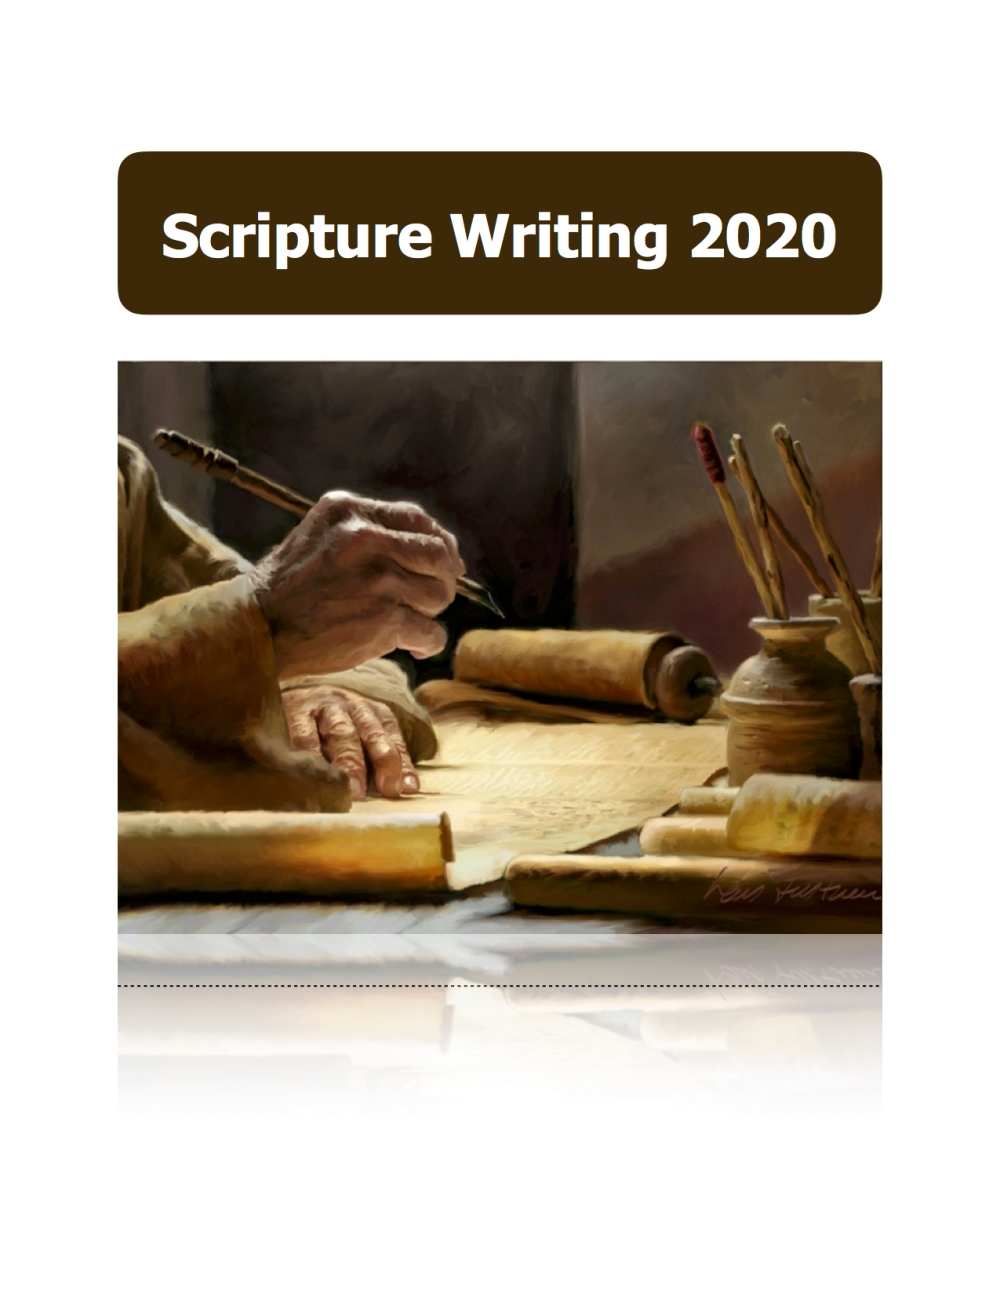 Scripture Writing 2020 cover